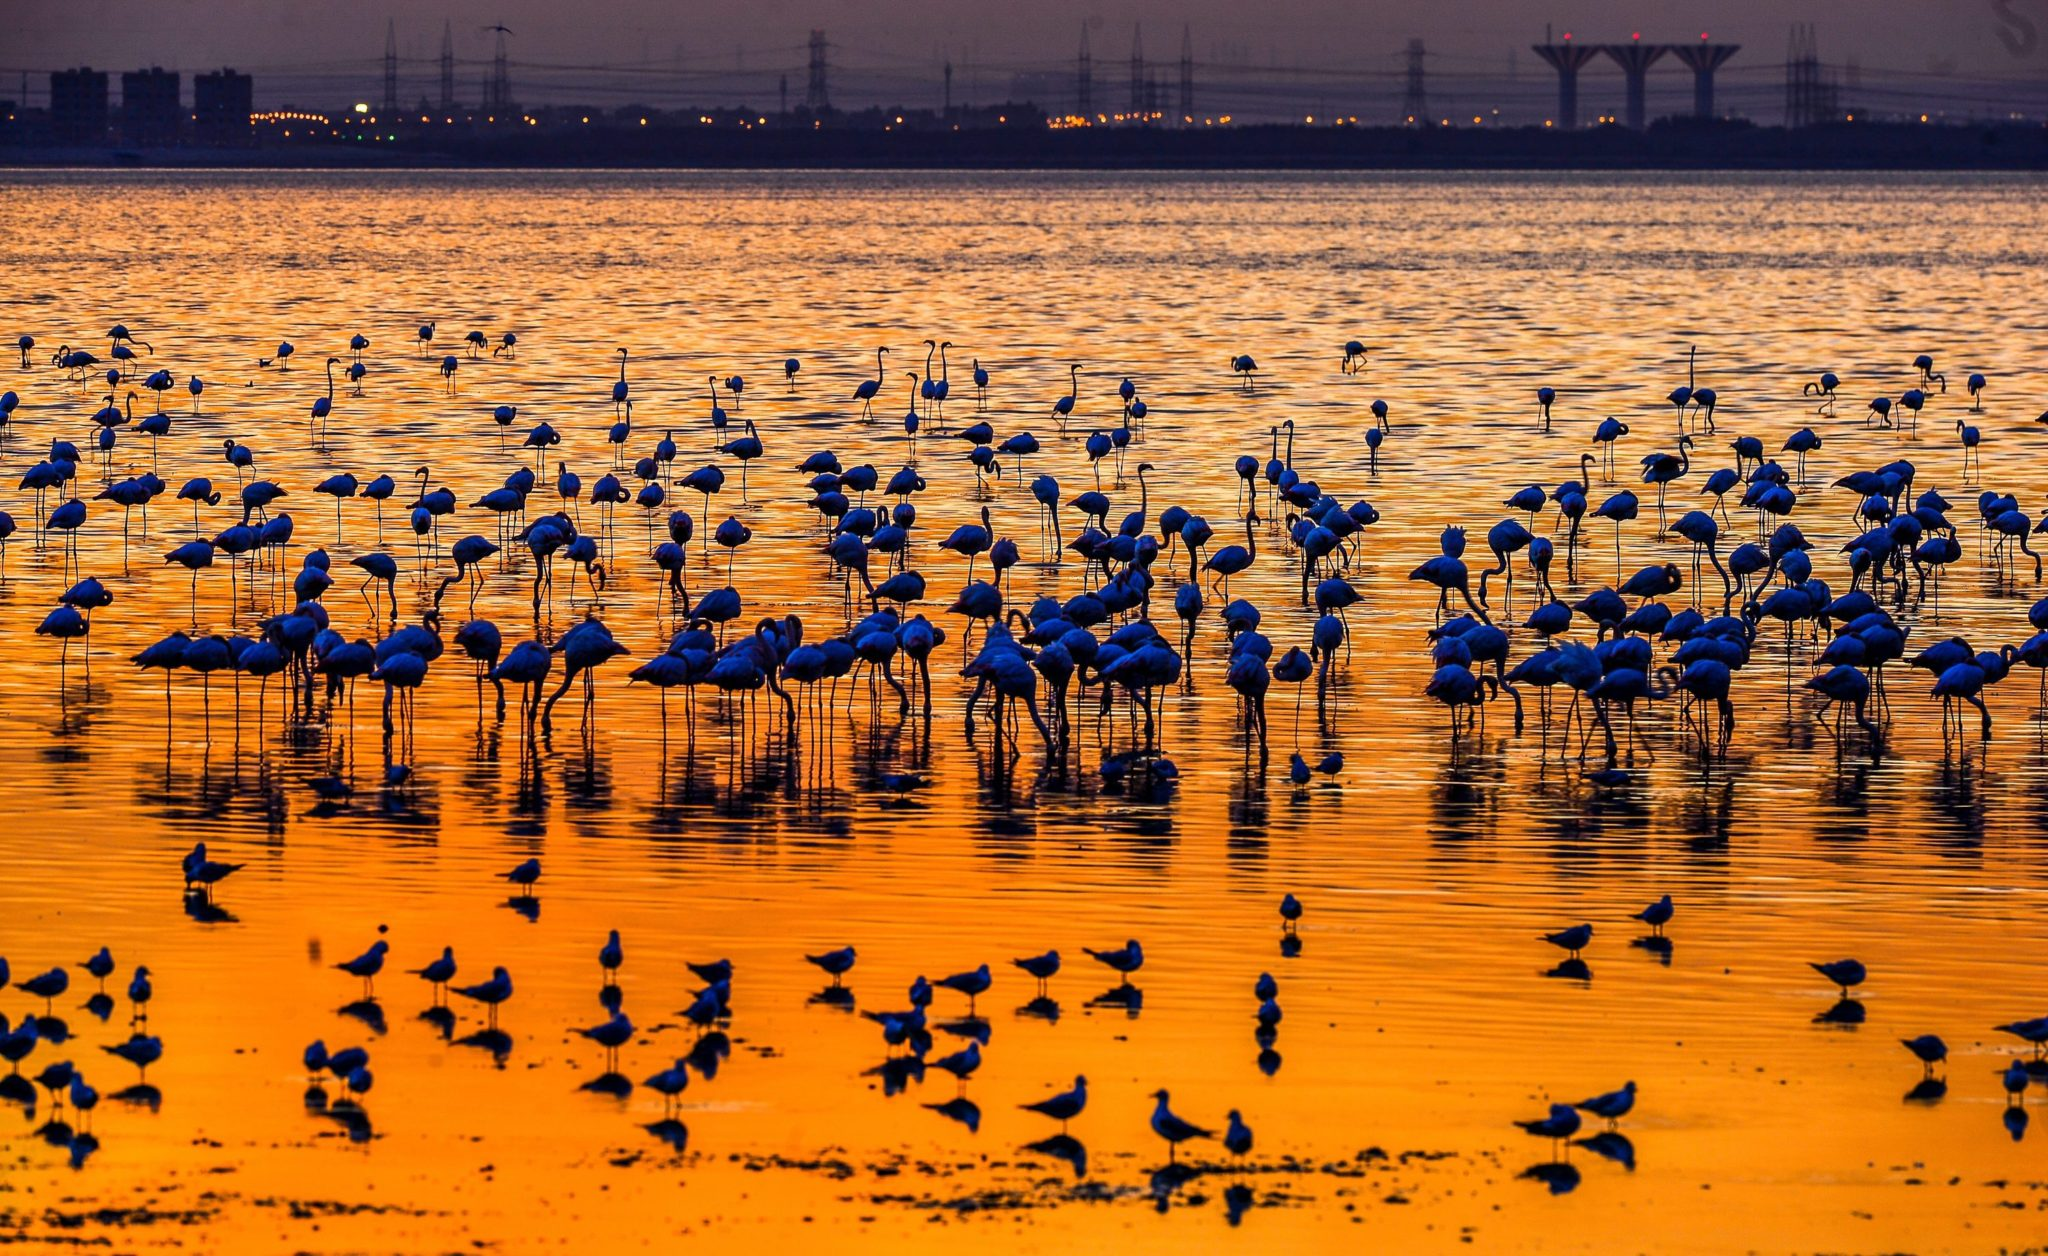 epa05681954 A photo made available on 19 December 2016 of a flock of flamingos and other birds gathering at the seaside with the silhouette of the nearby metropole in background during a colorful sunset in Kuwait City, Kuwait, 18 December 2016 evening.  EPA/RAED QUTENA Dostawca: PAP/EPA.